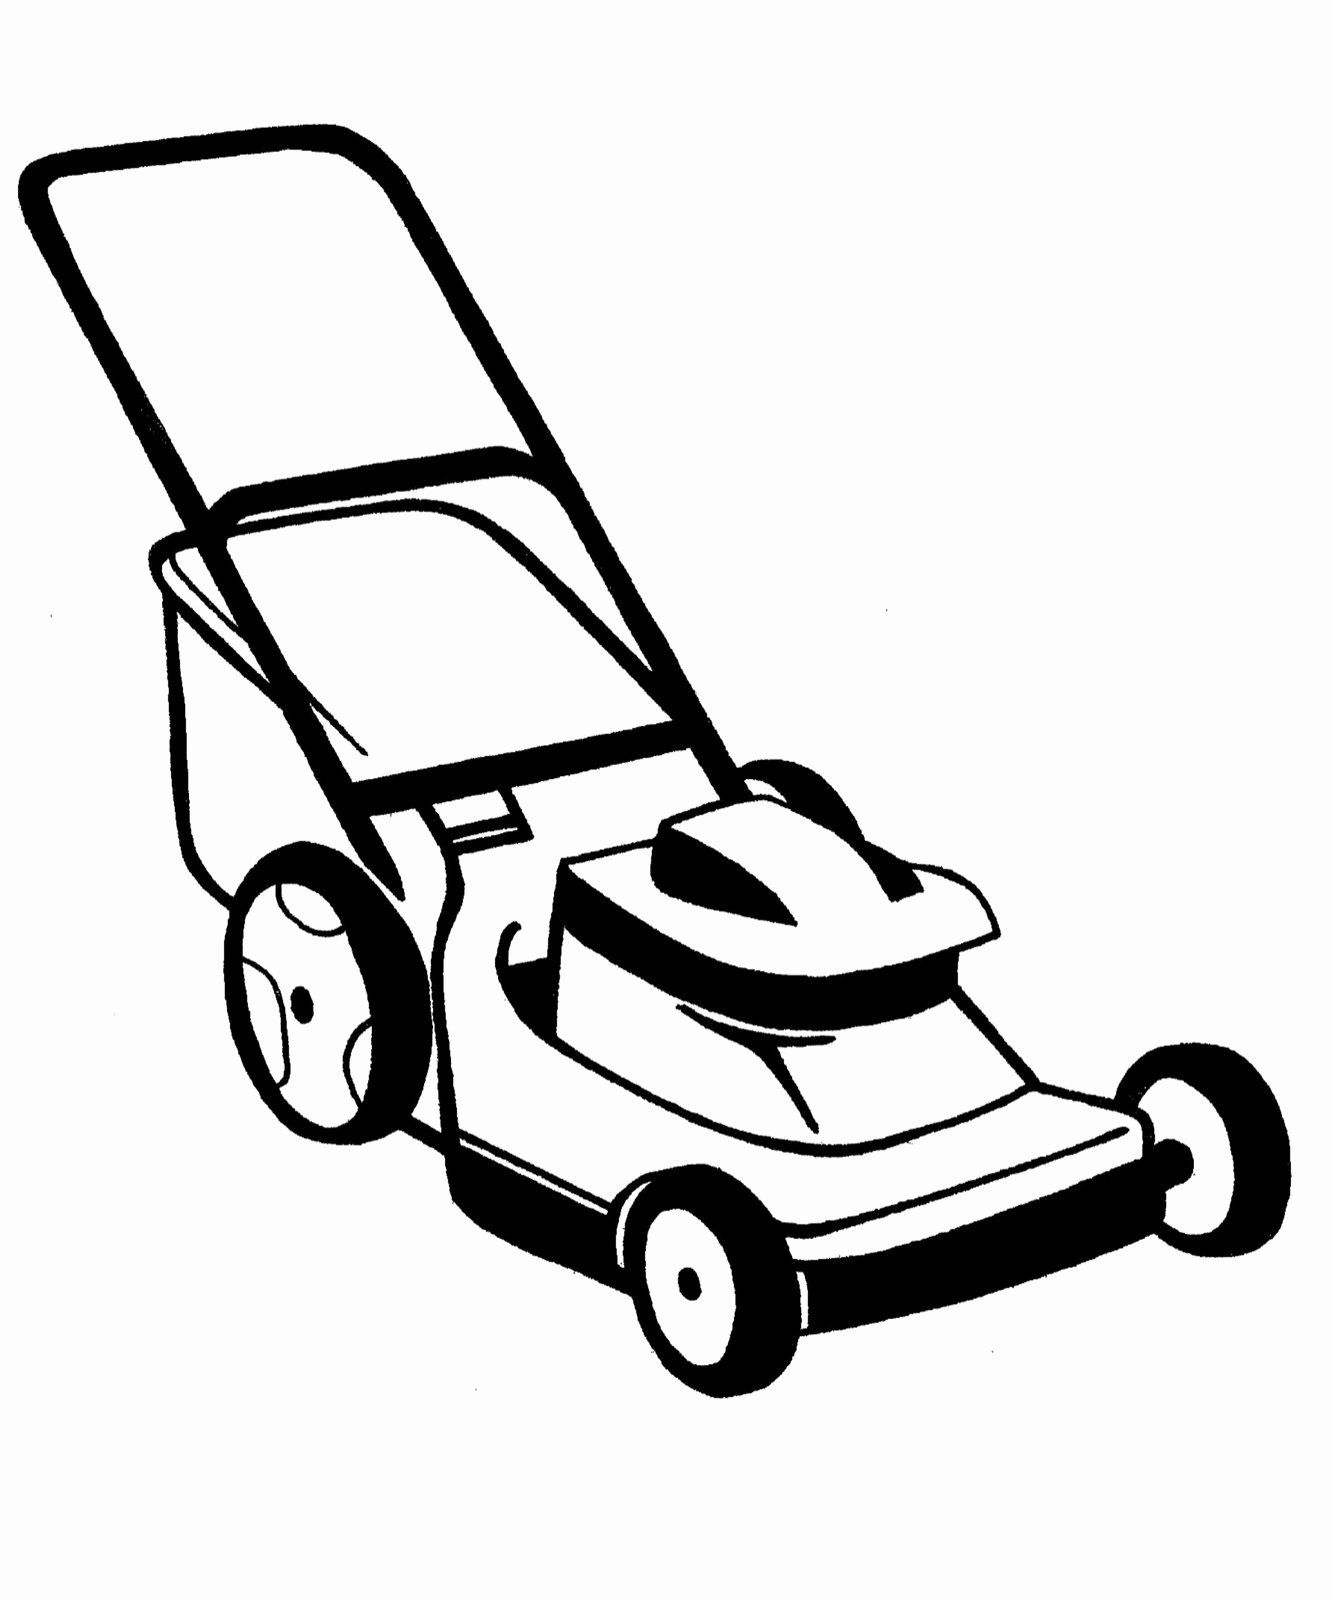 Lawn Mower Coloring Page Beautiful Black And White Lawn Mower Clipart Lawn Mower Best Lawn Mower Lawn Care Business